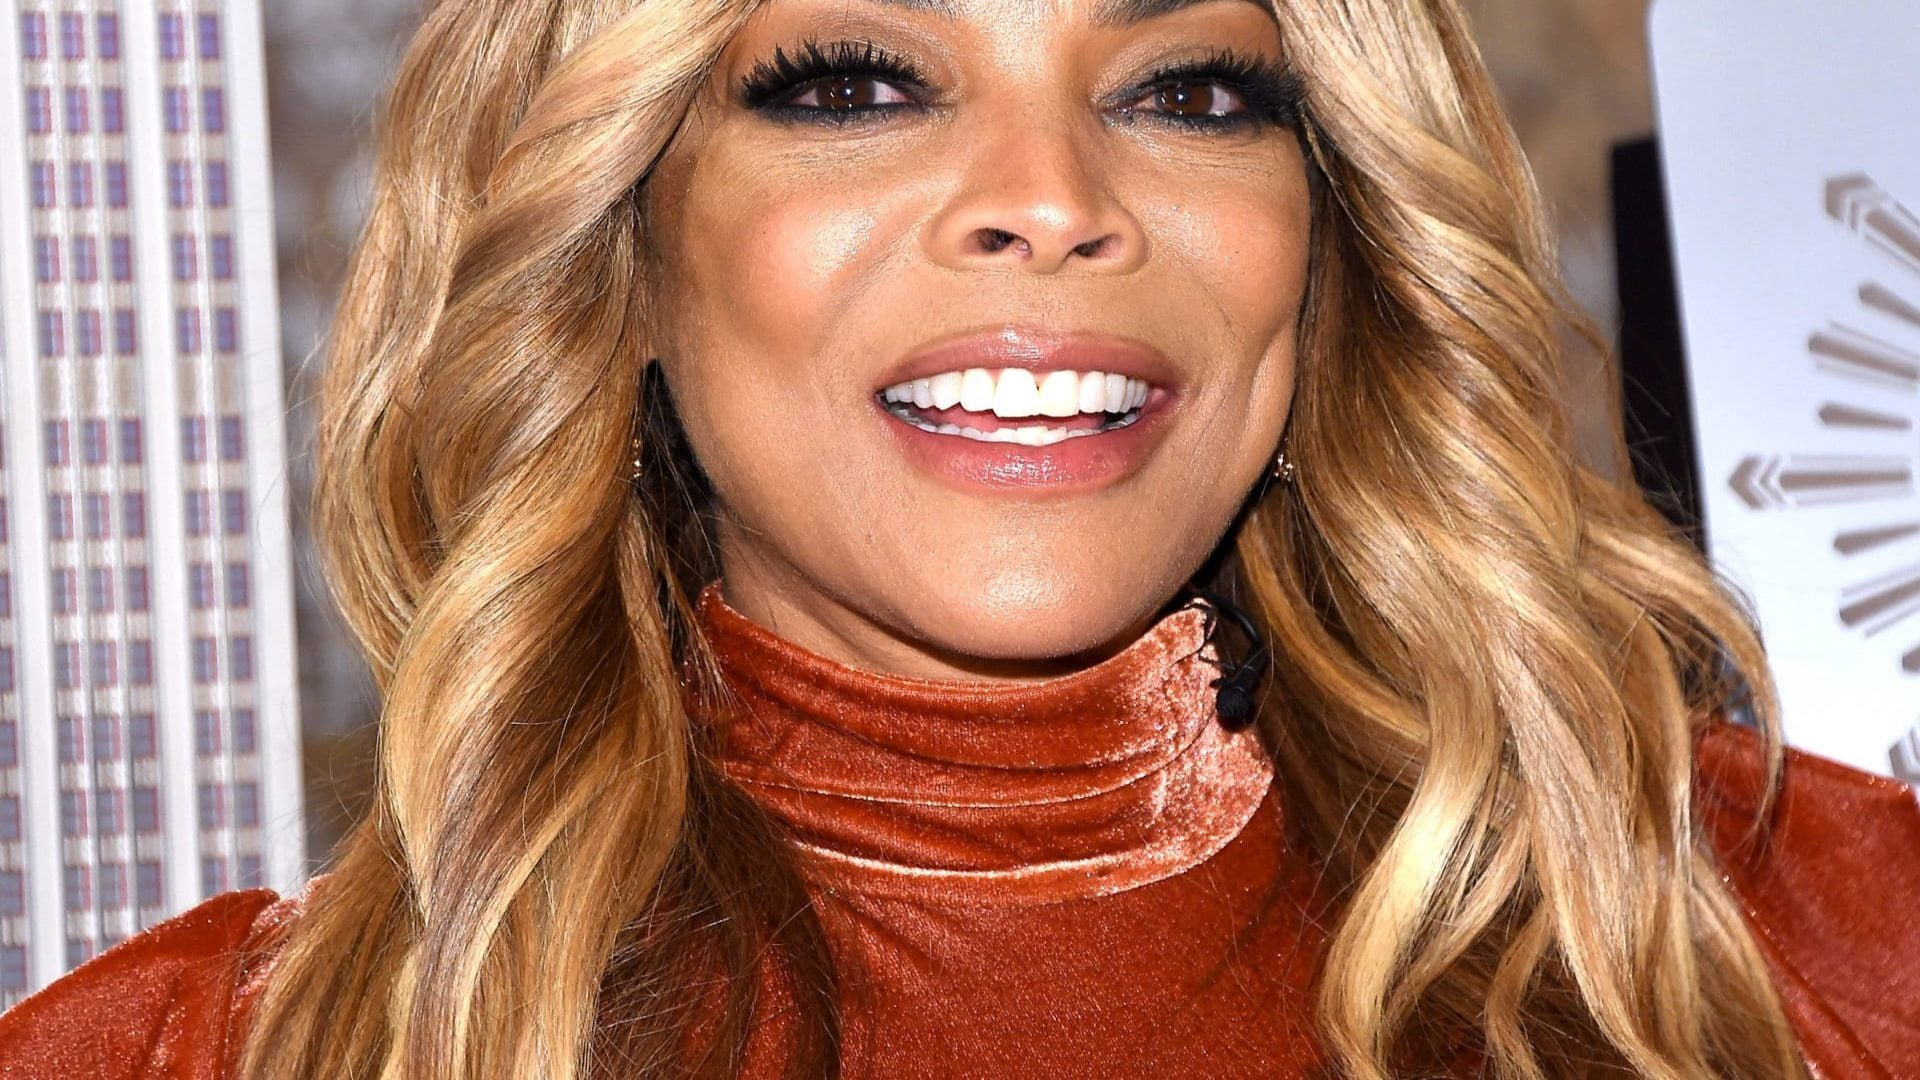 'The Wendy Williams Show' Announces More Celebrity Guest Hosts